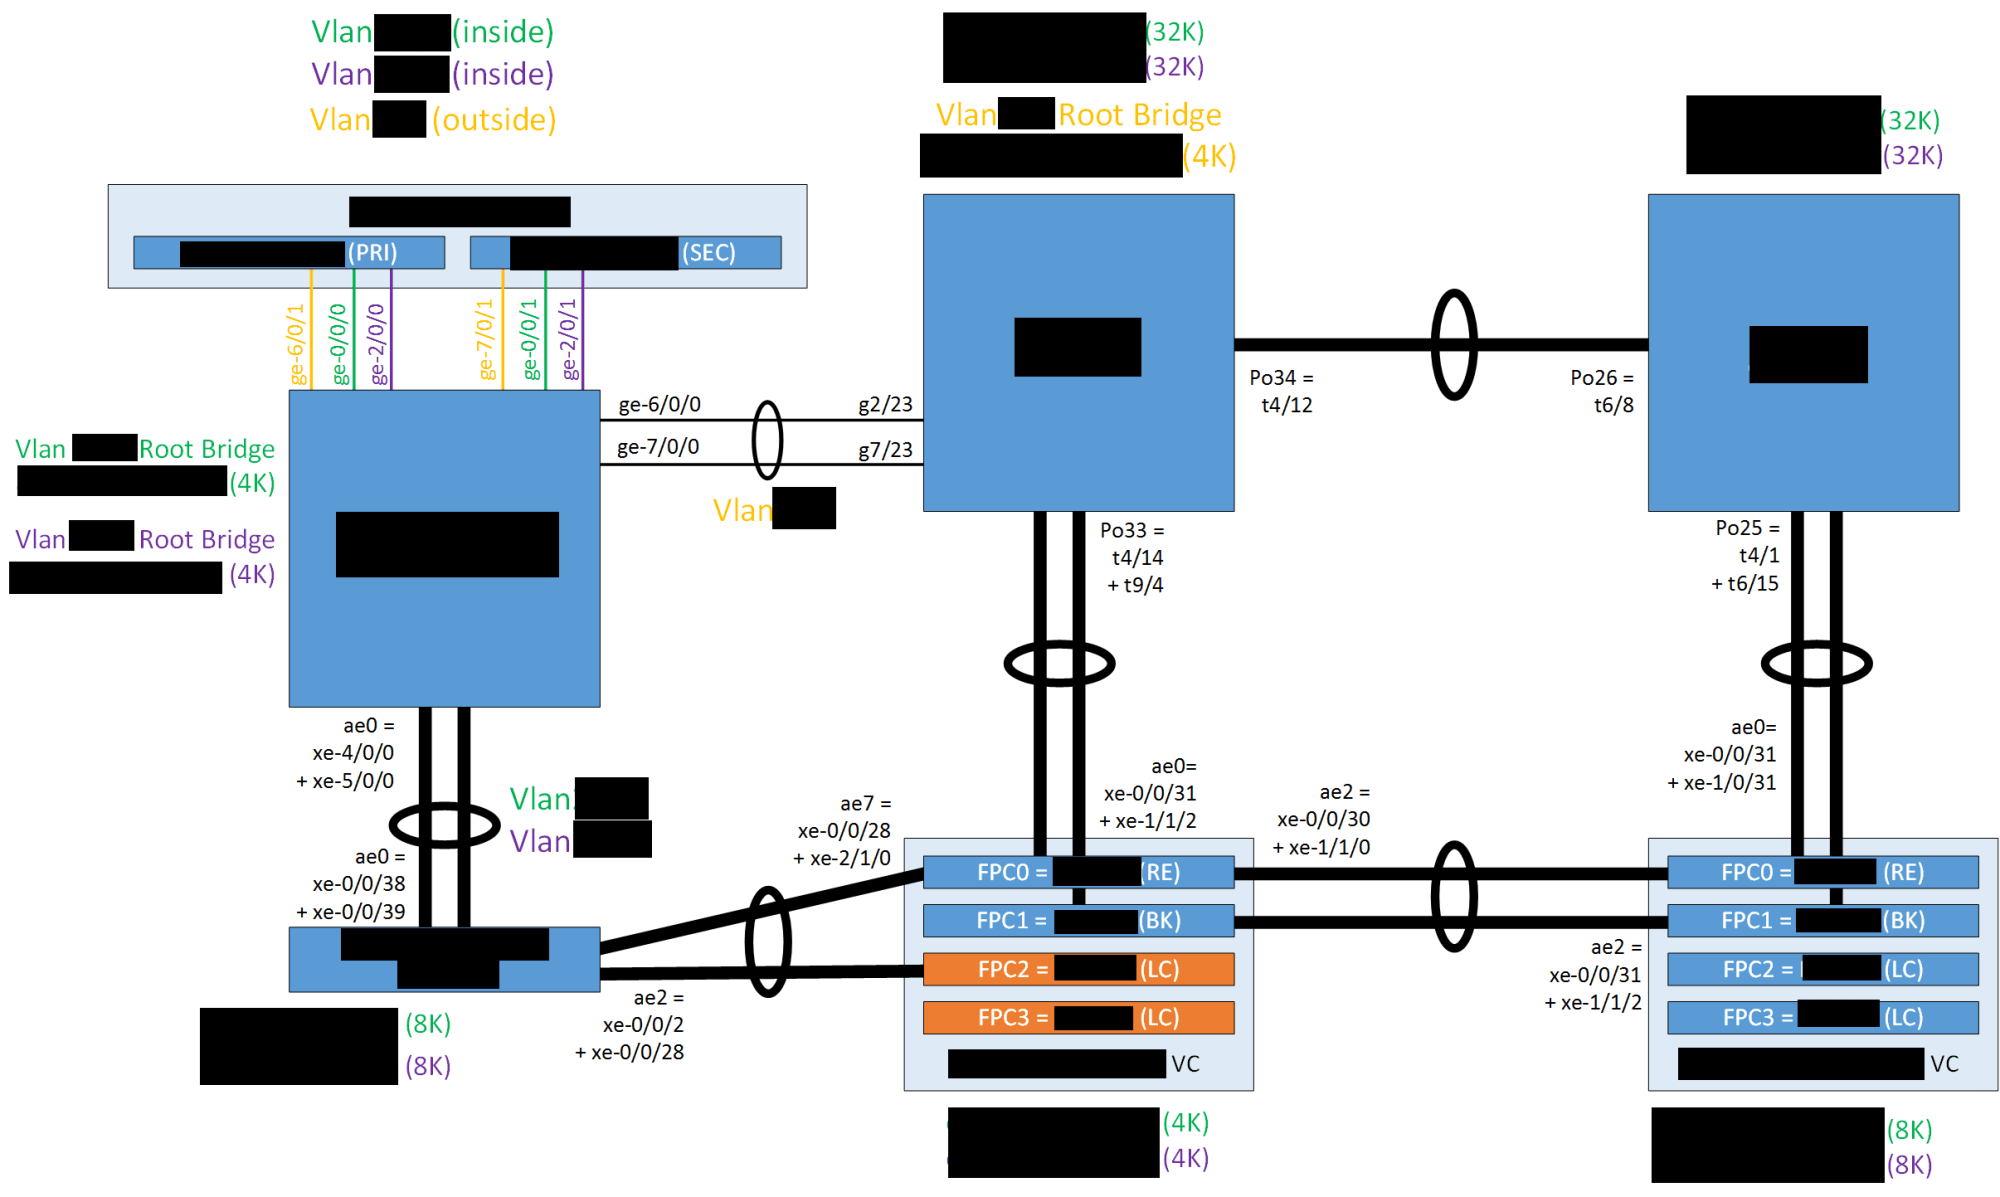 hight resolution of diagram of datacenter switch infrastructure for per vlan stp bridge priority planning when root bridge varies by gateway